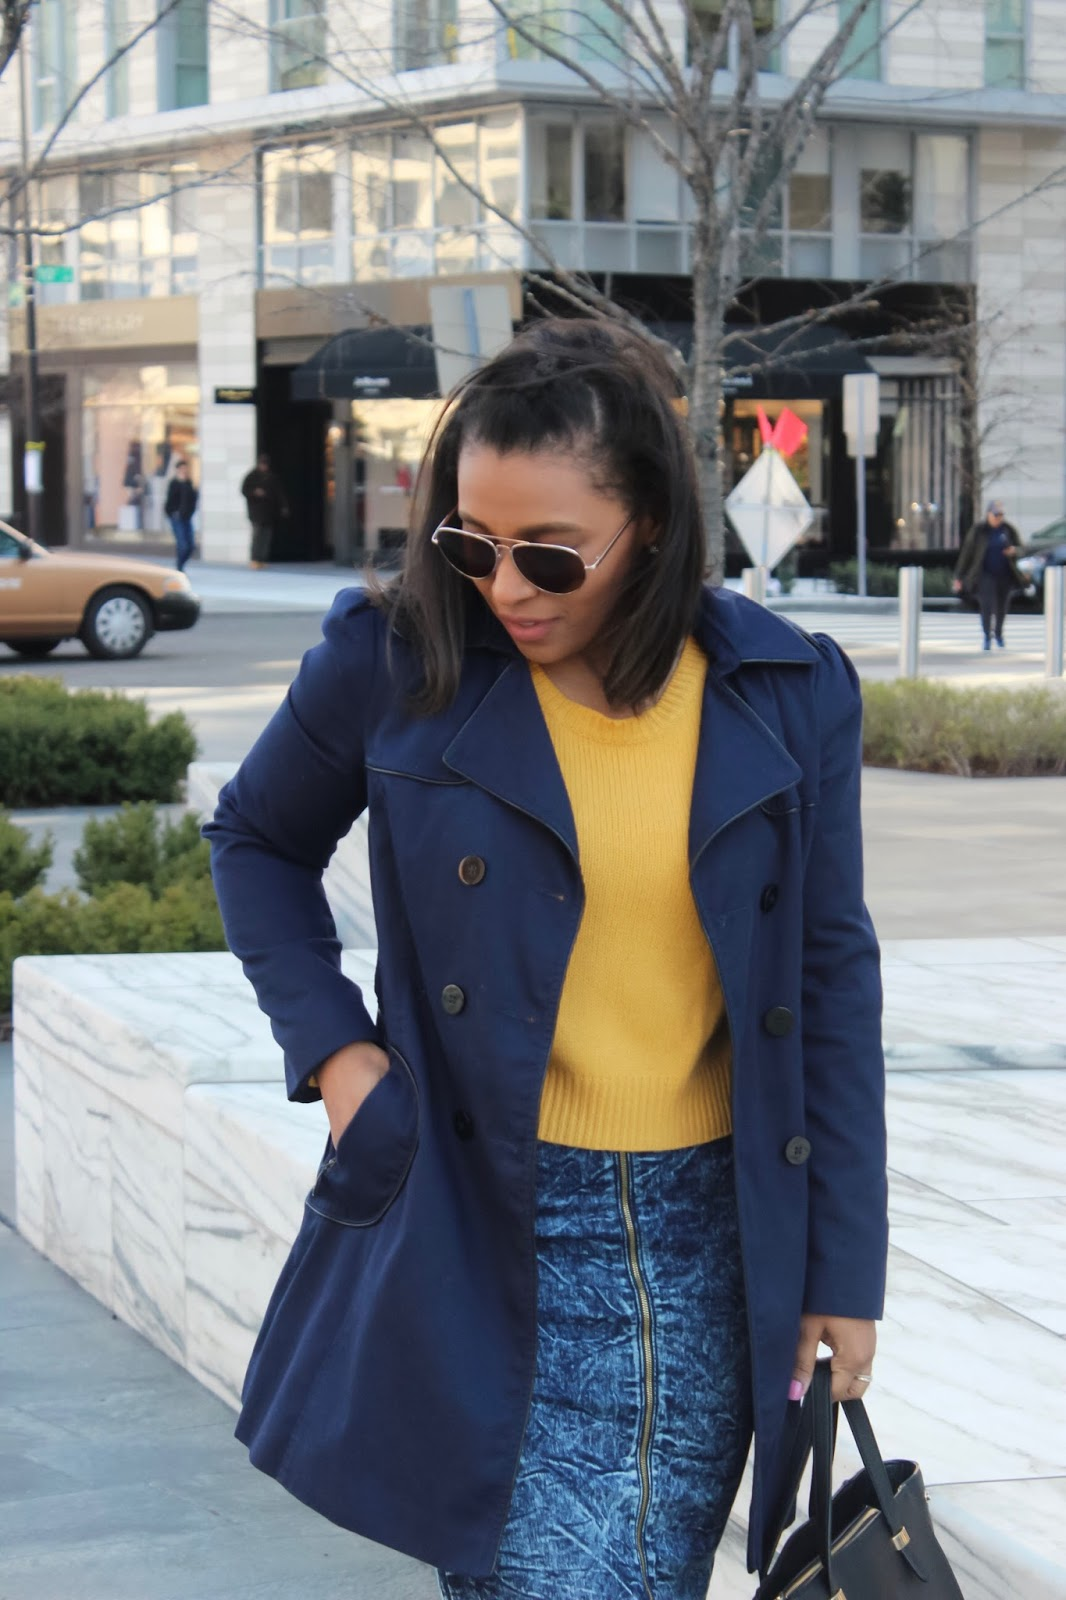 structured jacket, otk boots, mustard sweater, how to wear a structured jacket, over the knee boots